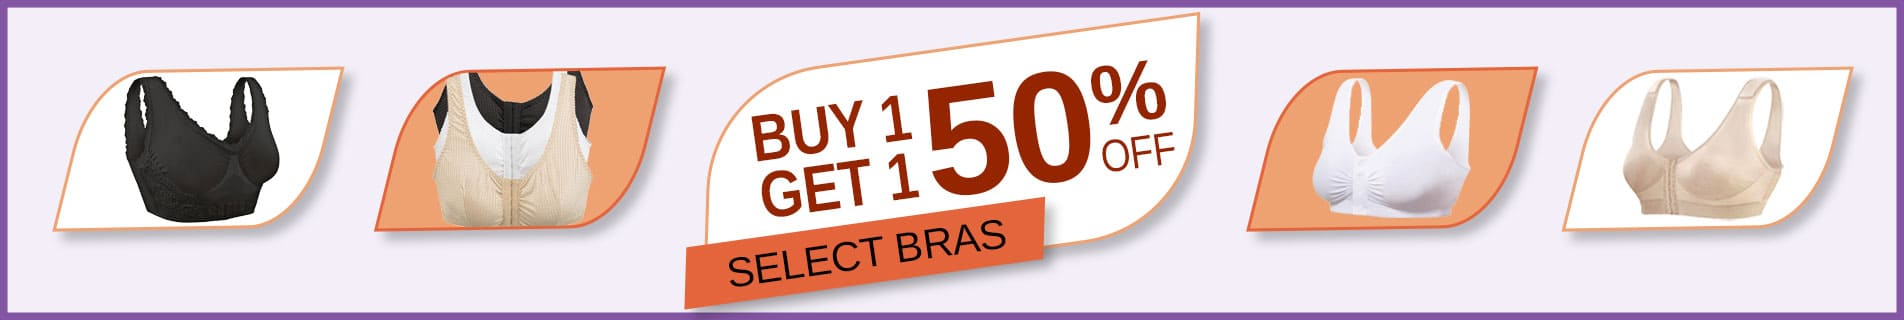 Buy 1 Get 1 50% Off Bras